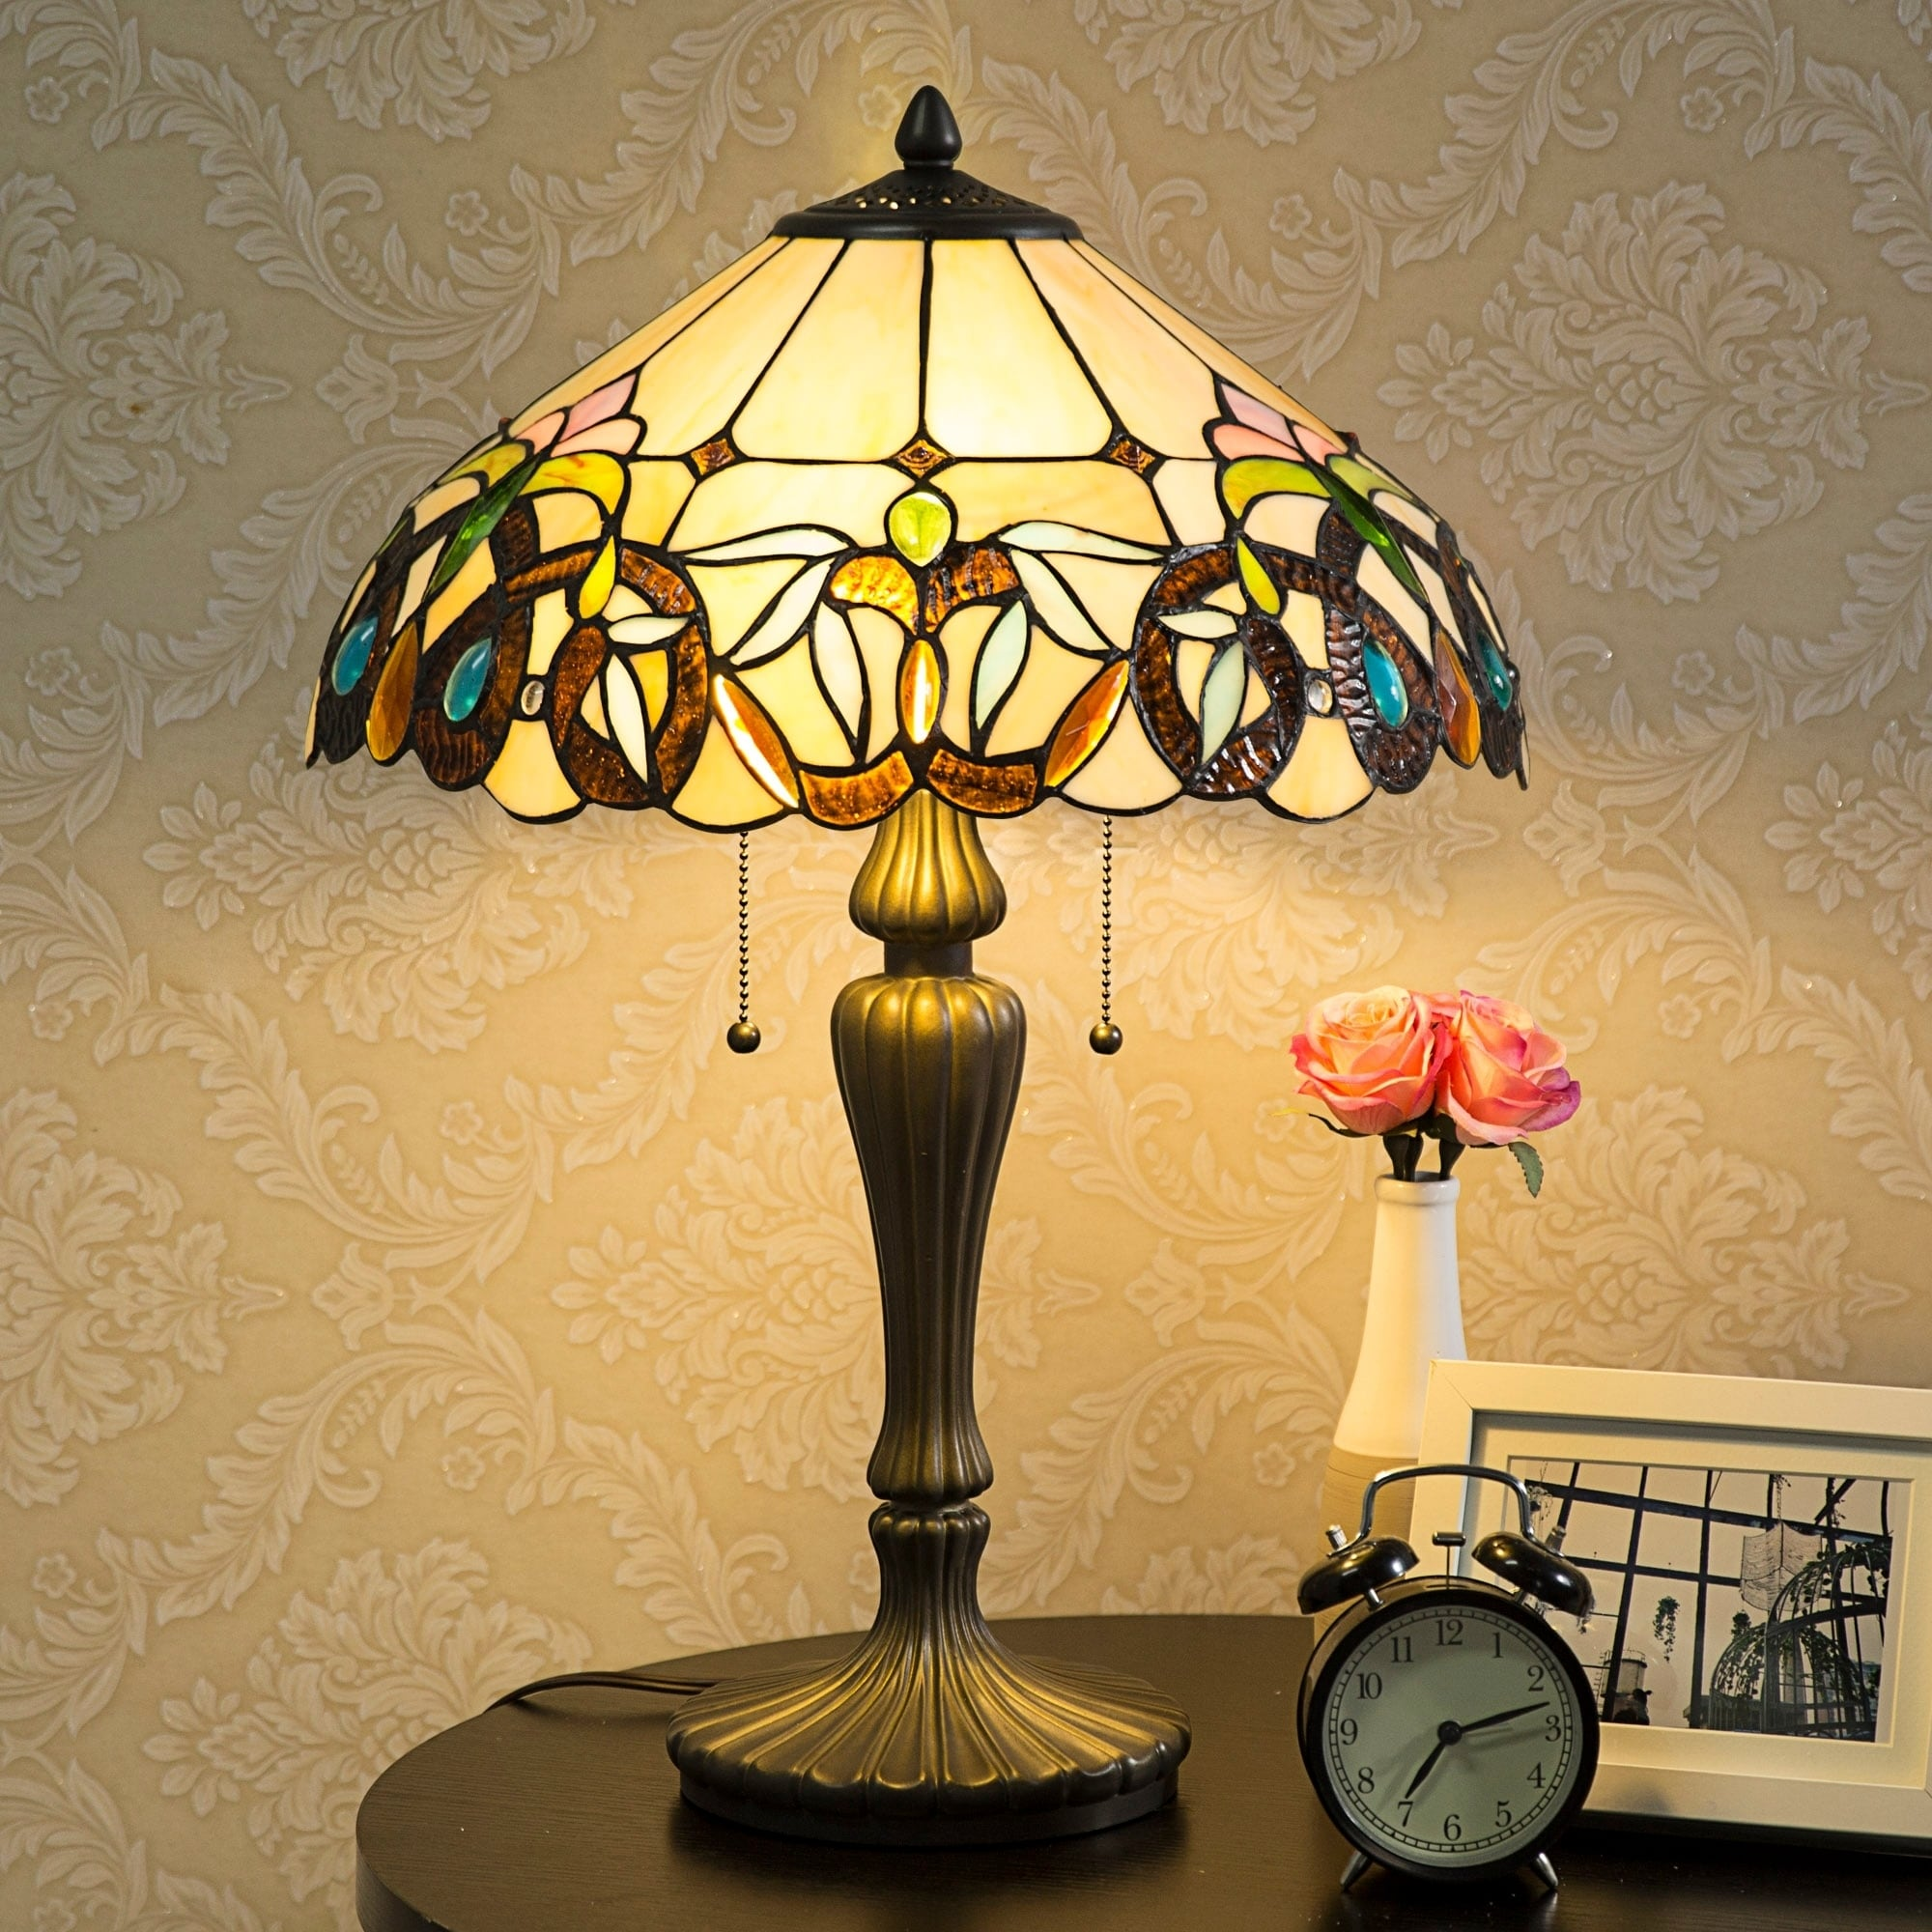 Lamp 15 5 Lampshade Table Baroque Stained Gl Desk Home Decor Lighting